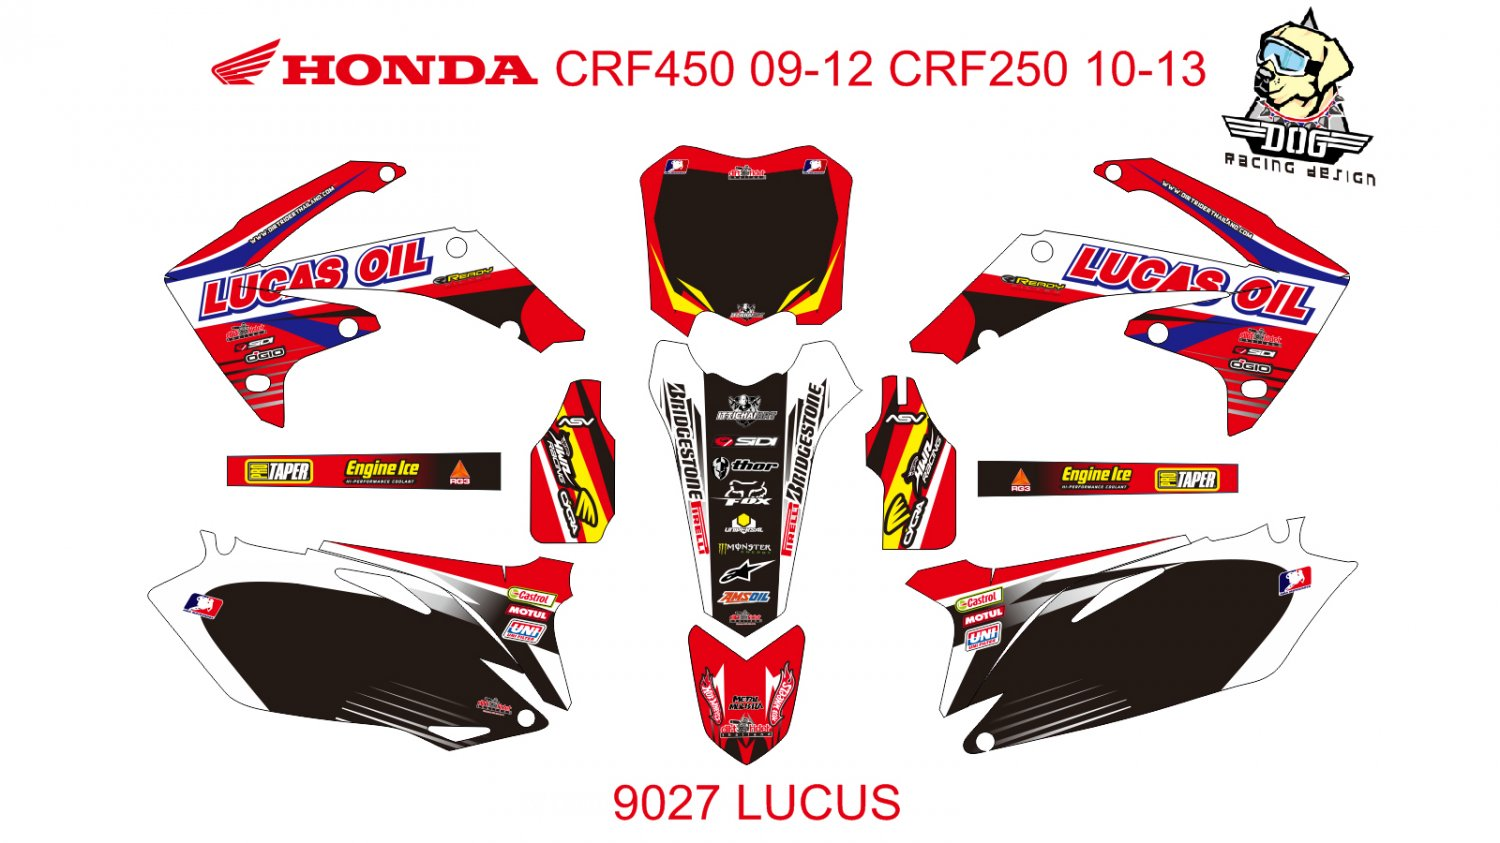 HONDA CRF 450 2009-2012 CRF 250 2010-2013 DECAL KIT CODE.9027